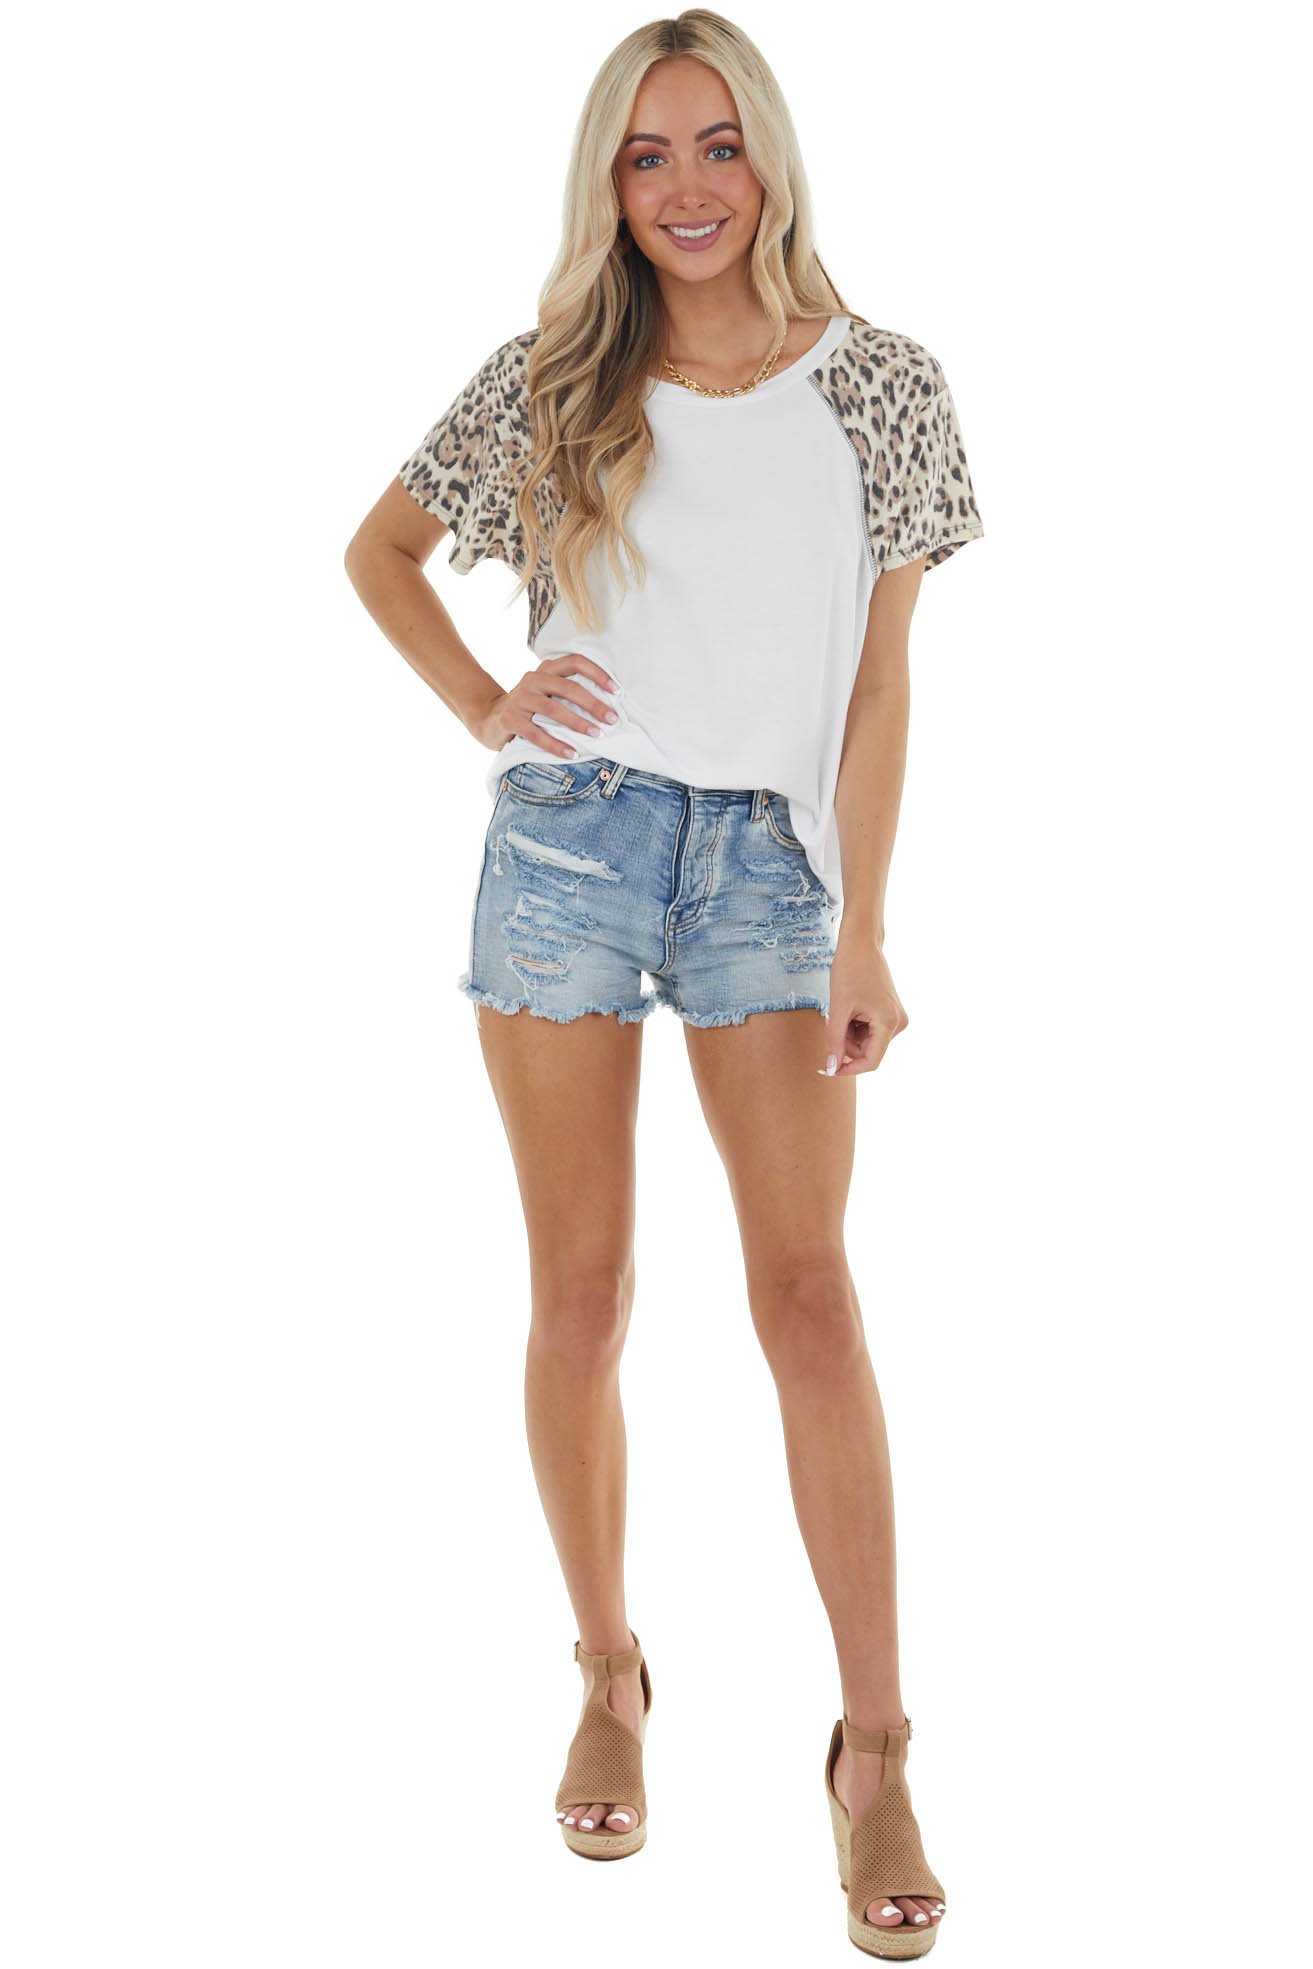 Off White Top with Contrasting Leopard Sleeves